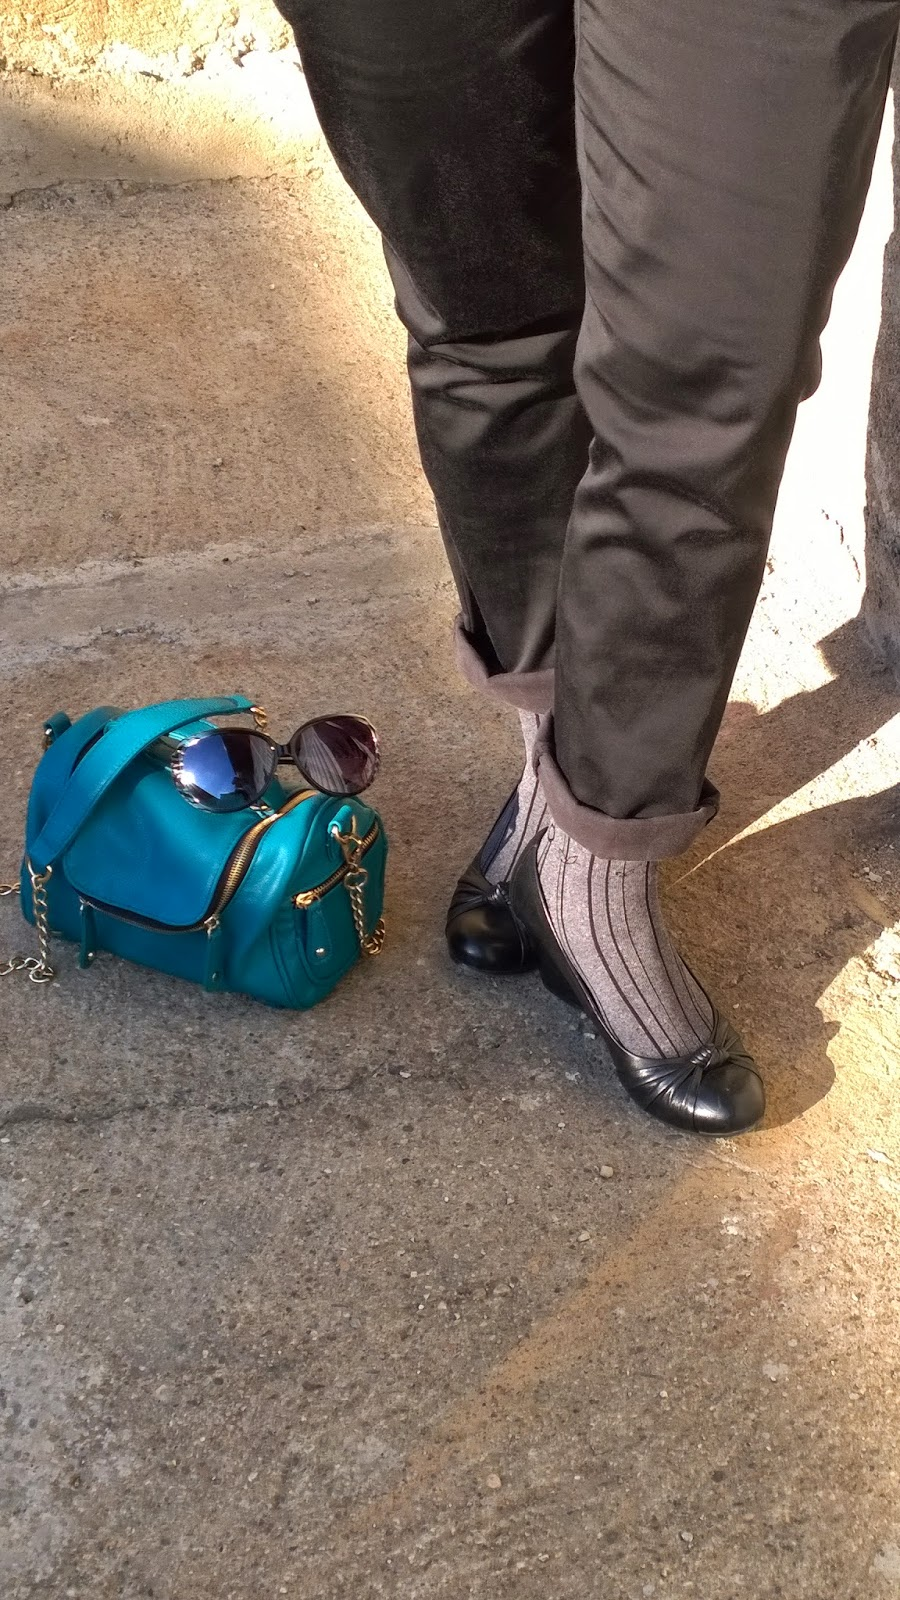 Shoes & socks, handbag & sunglasses